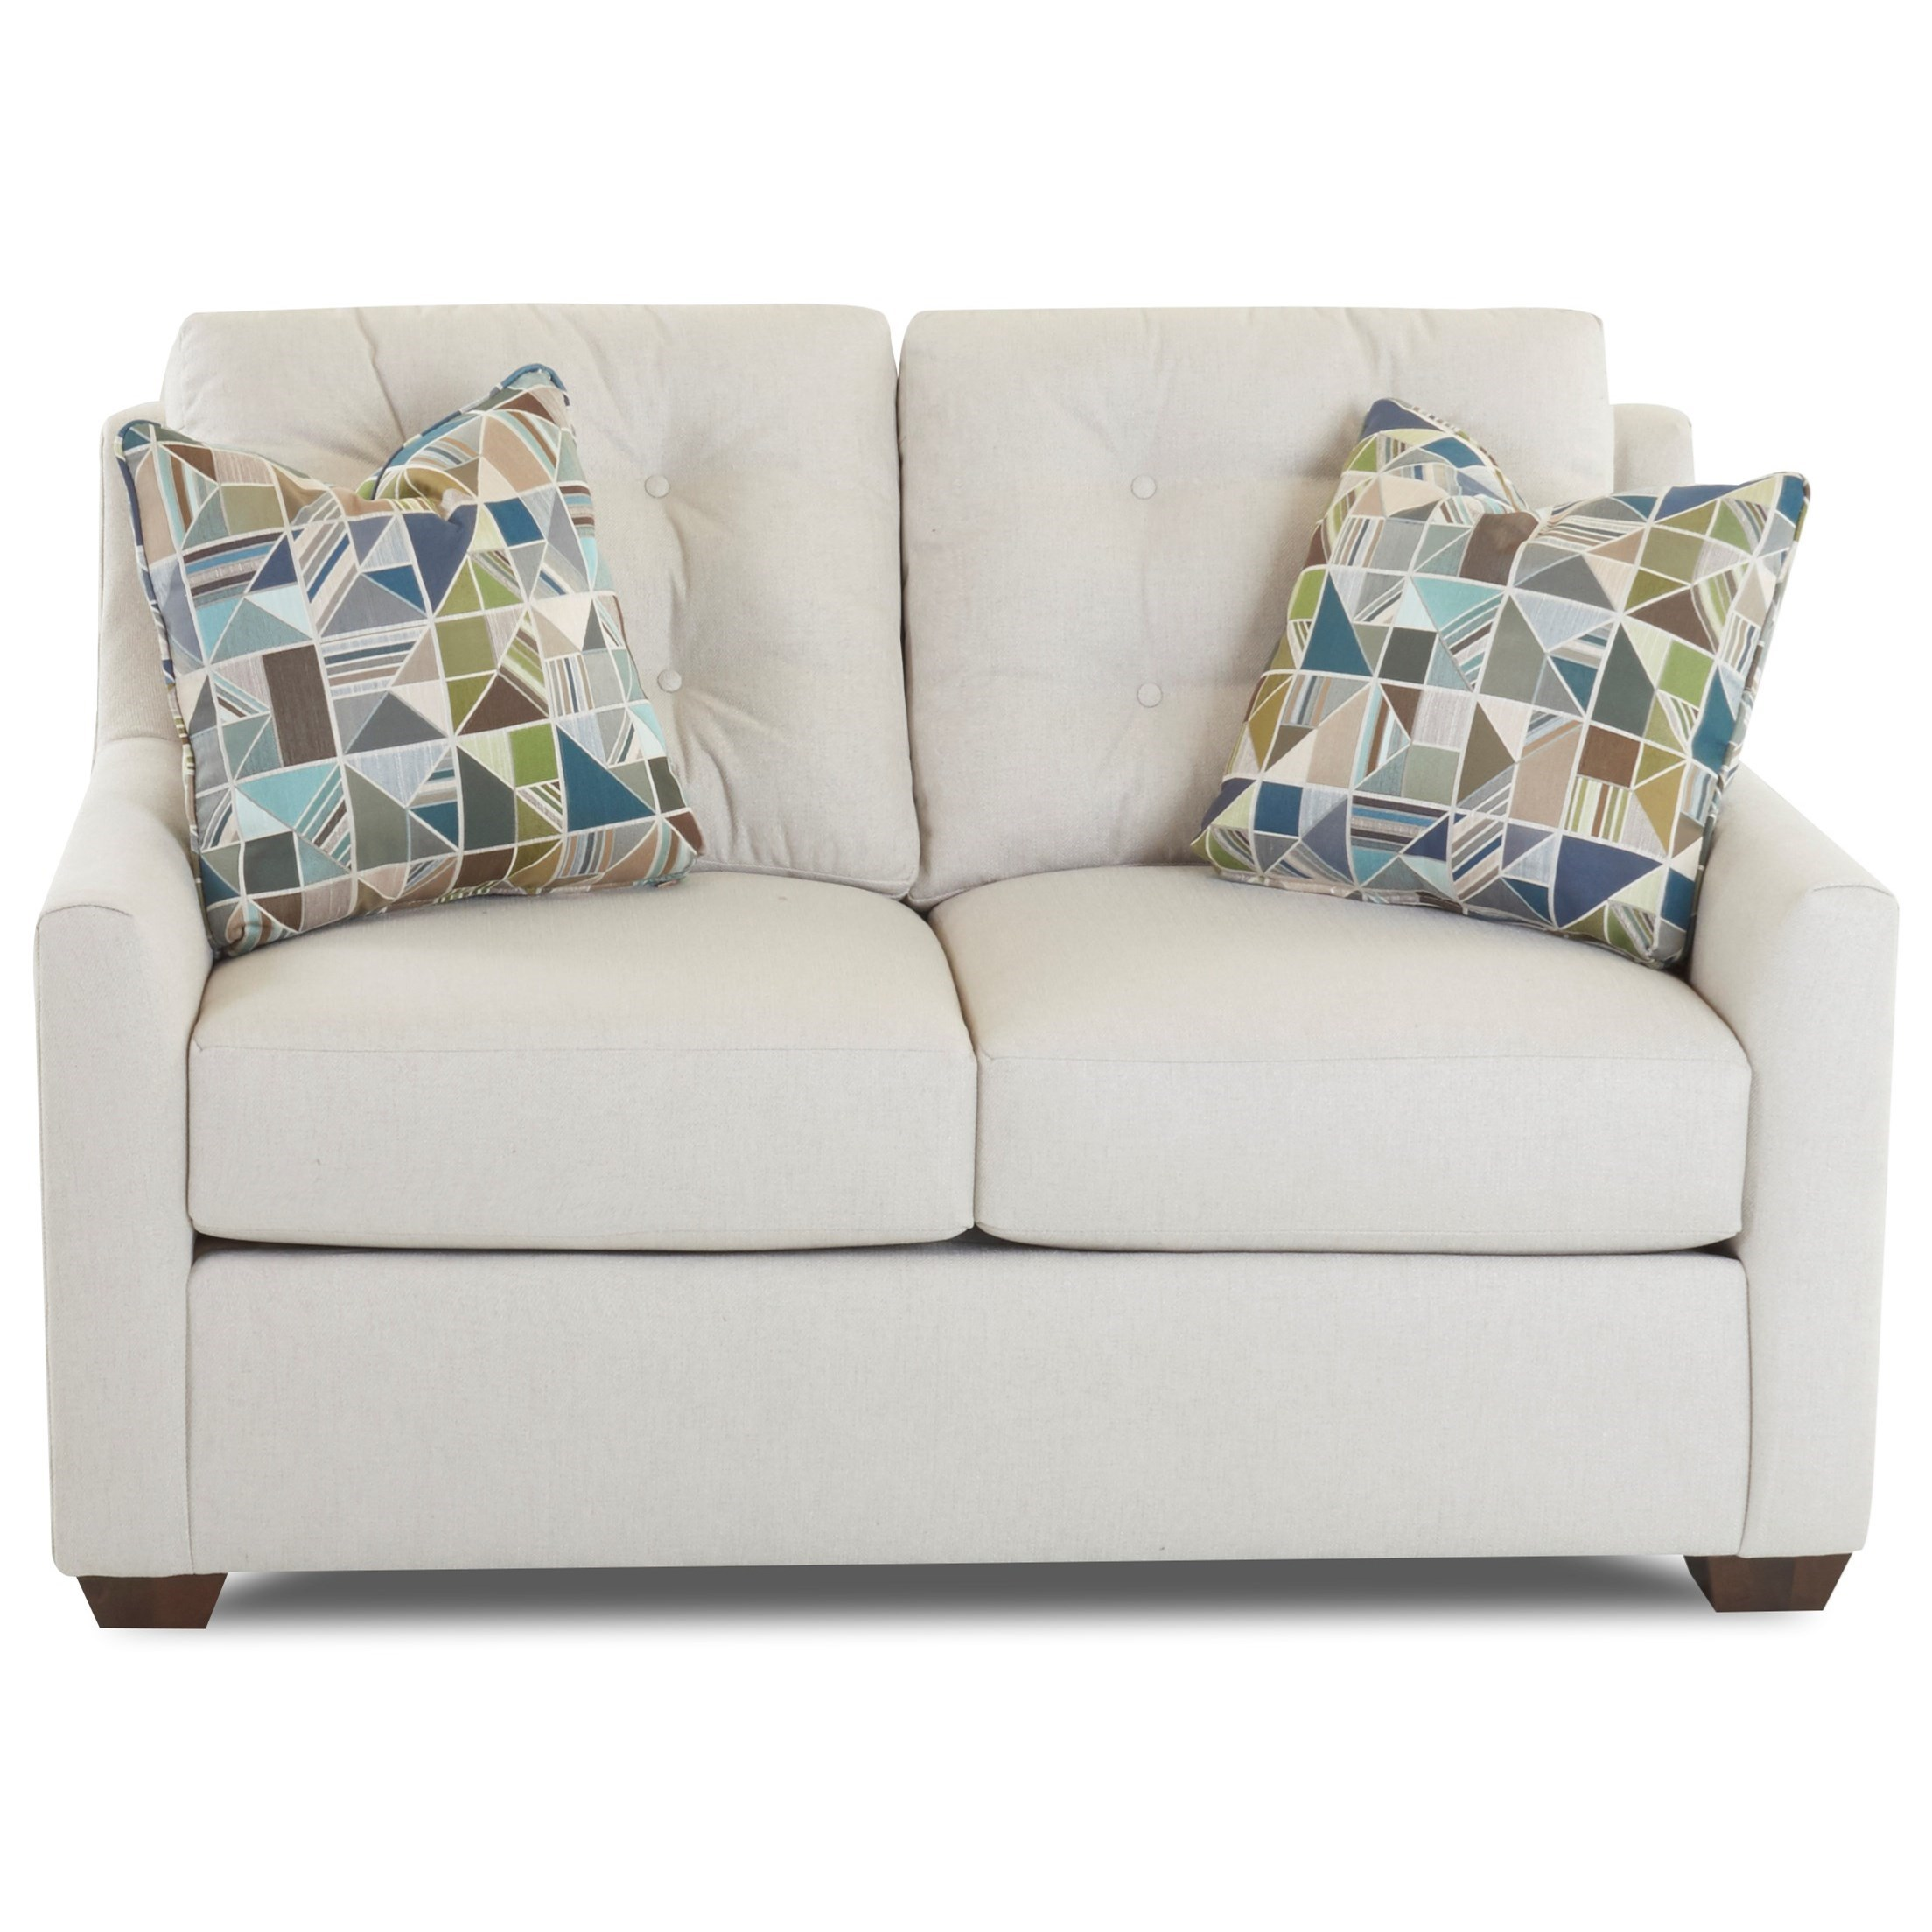 Loveseat with Button Tufting and InnerSpring Cushions